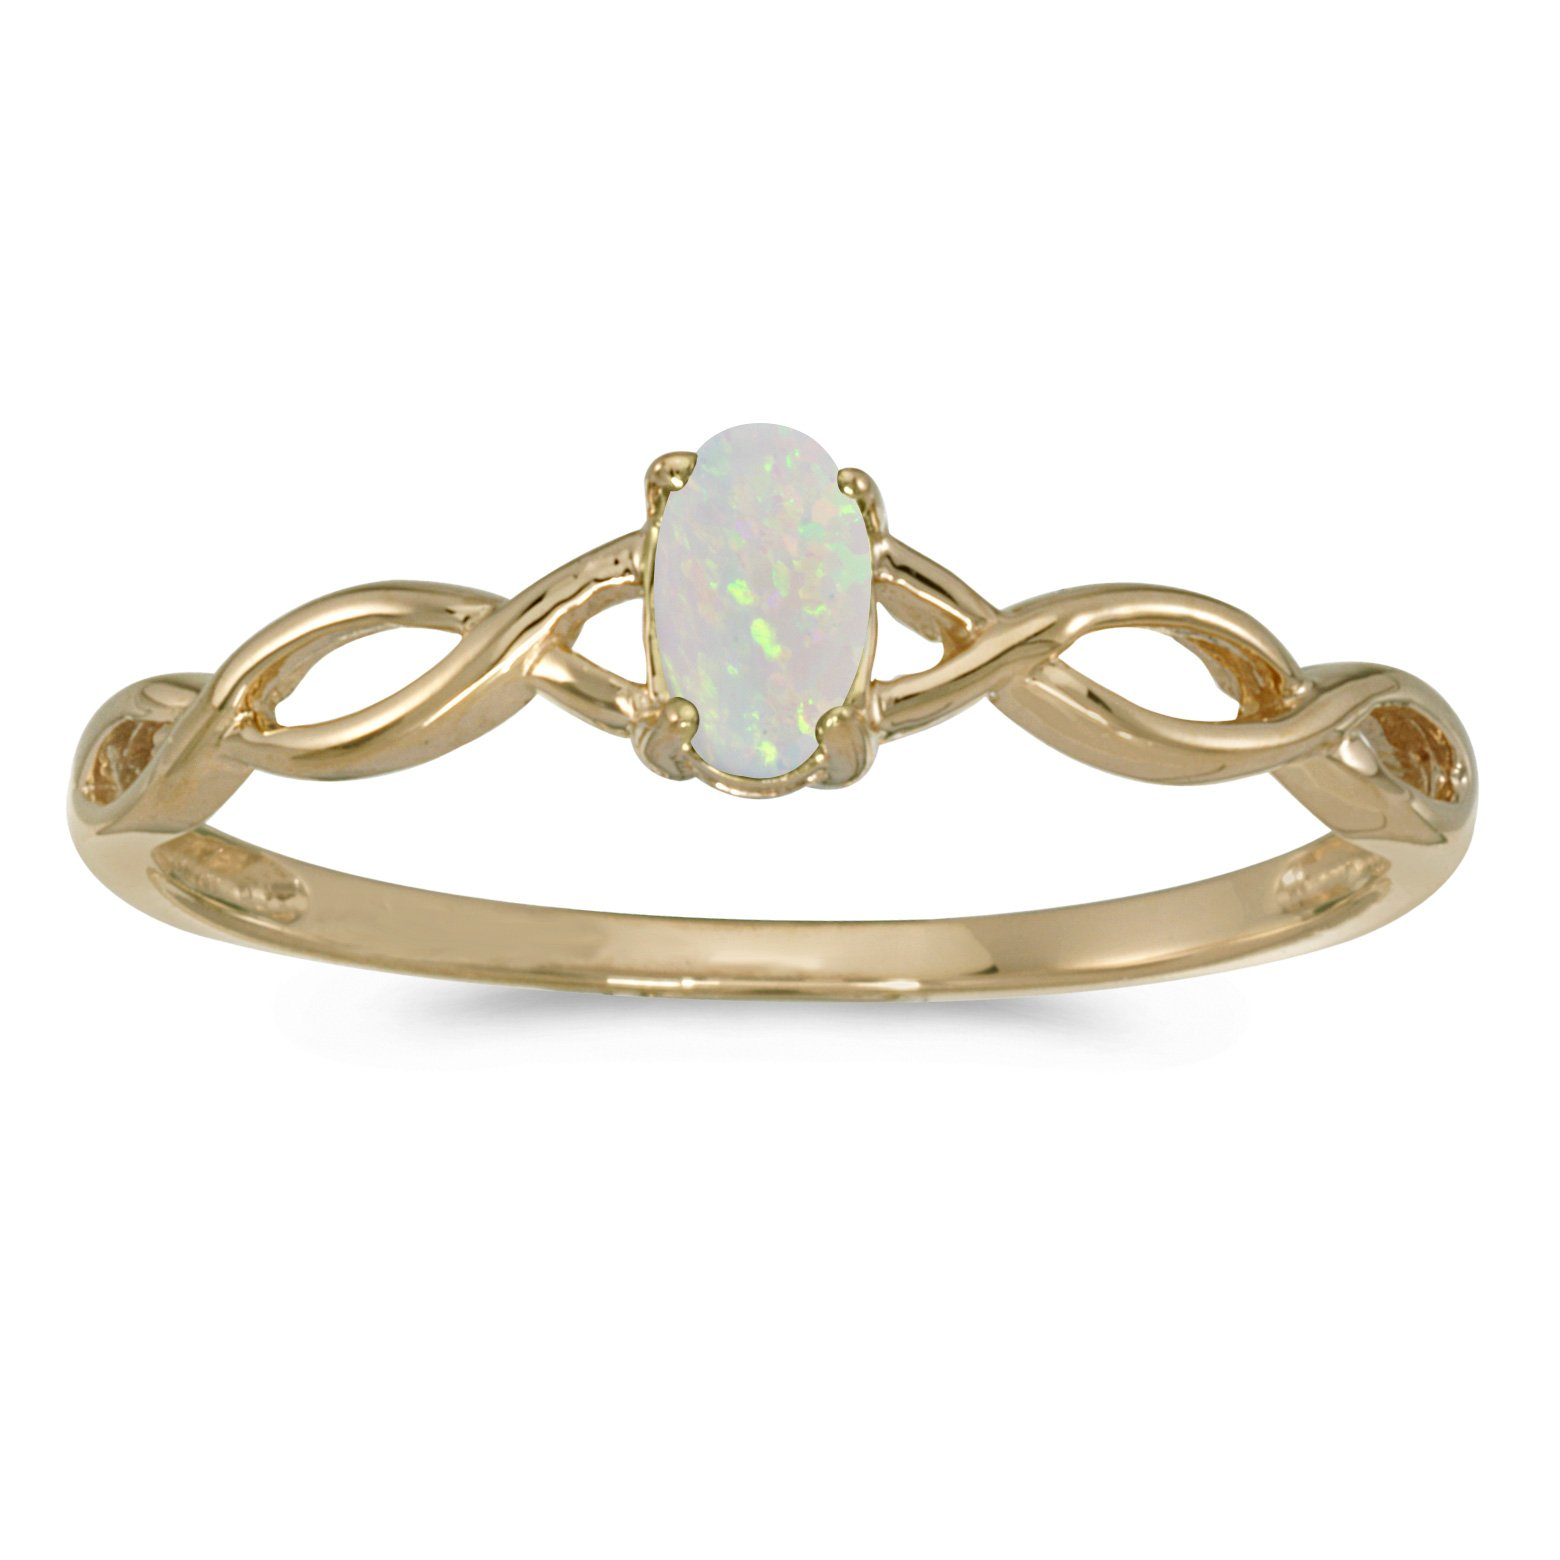 0.08 Carat ctw 10k Gold Oval White Opal Solitaire Infinity Twisting Engagement Fashion Promise Ring - Yellow-gold, Size 7.5